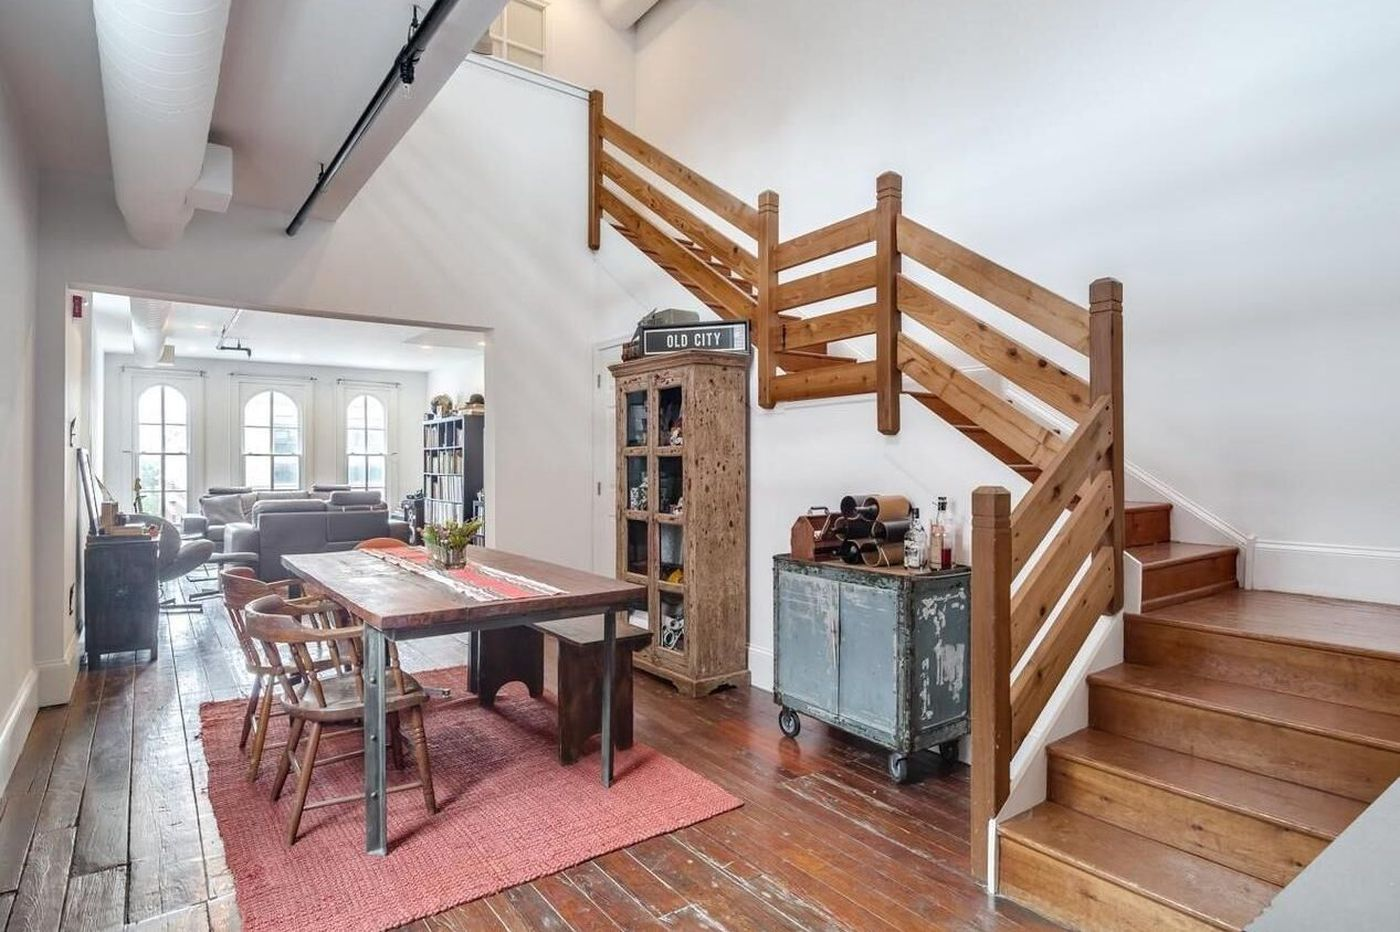 On the market: Old City condo in former textile factory for $545,000